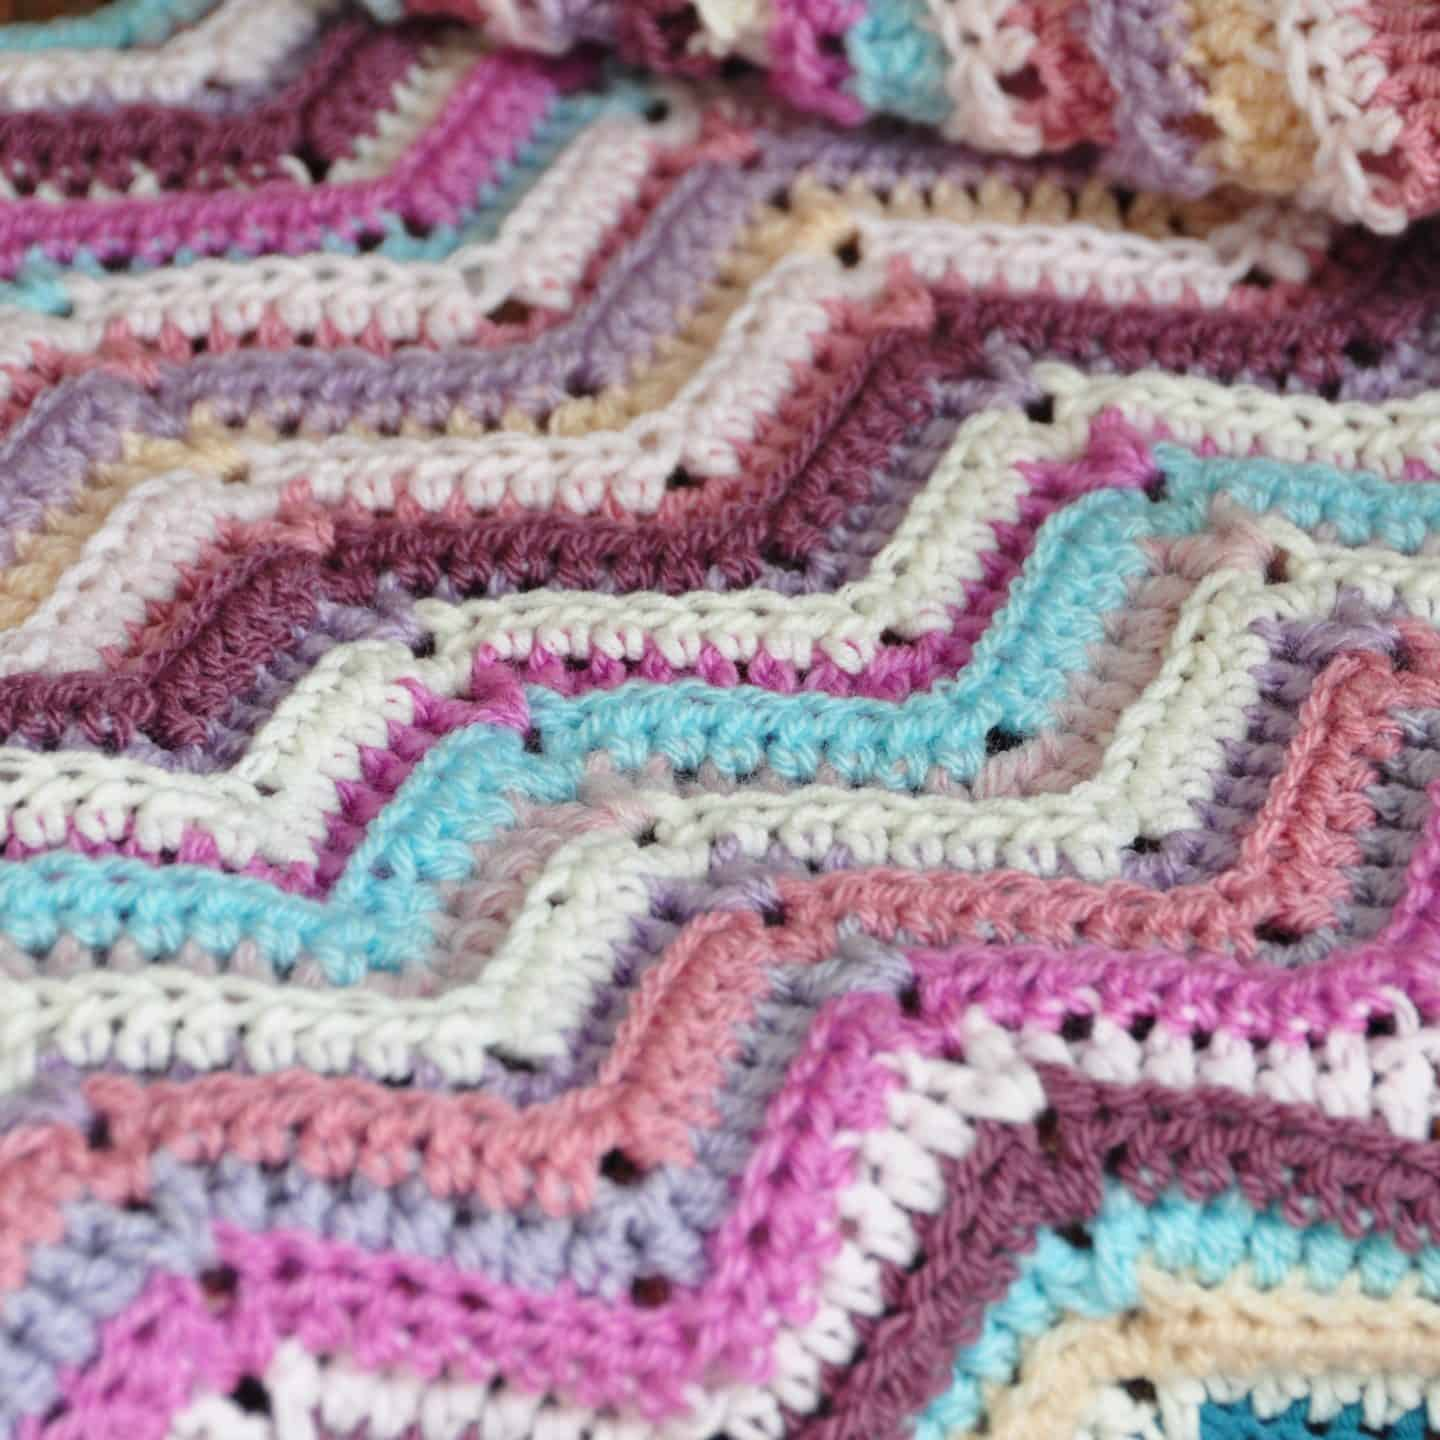 Learn to crochet the ripple stitch with this free crochet tutorial and crochet blanket pattern in both UK and US terms. Feel the retro decor vibe with bright colours or choose classic tones to make your crochet blanket perfect for you. Great for beginner crocheters.